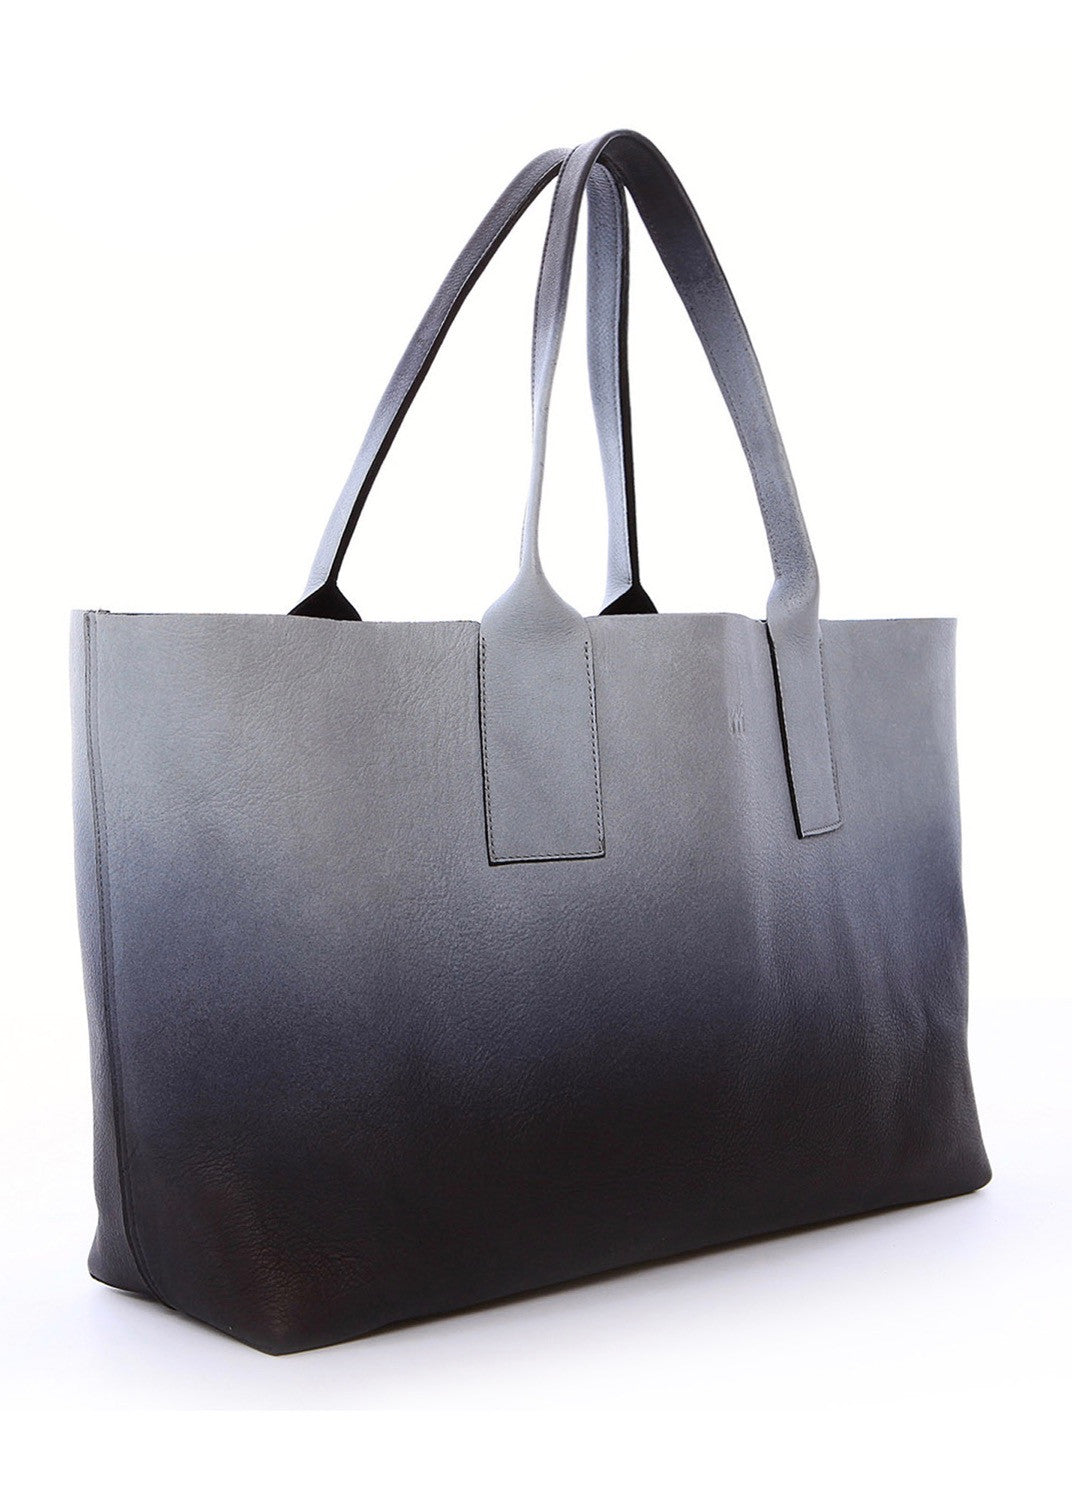 AYK moon simple tote